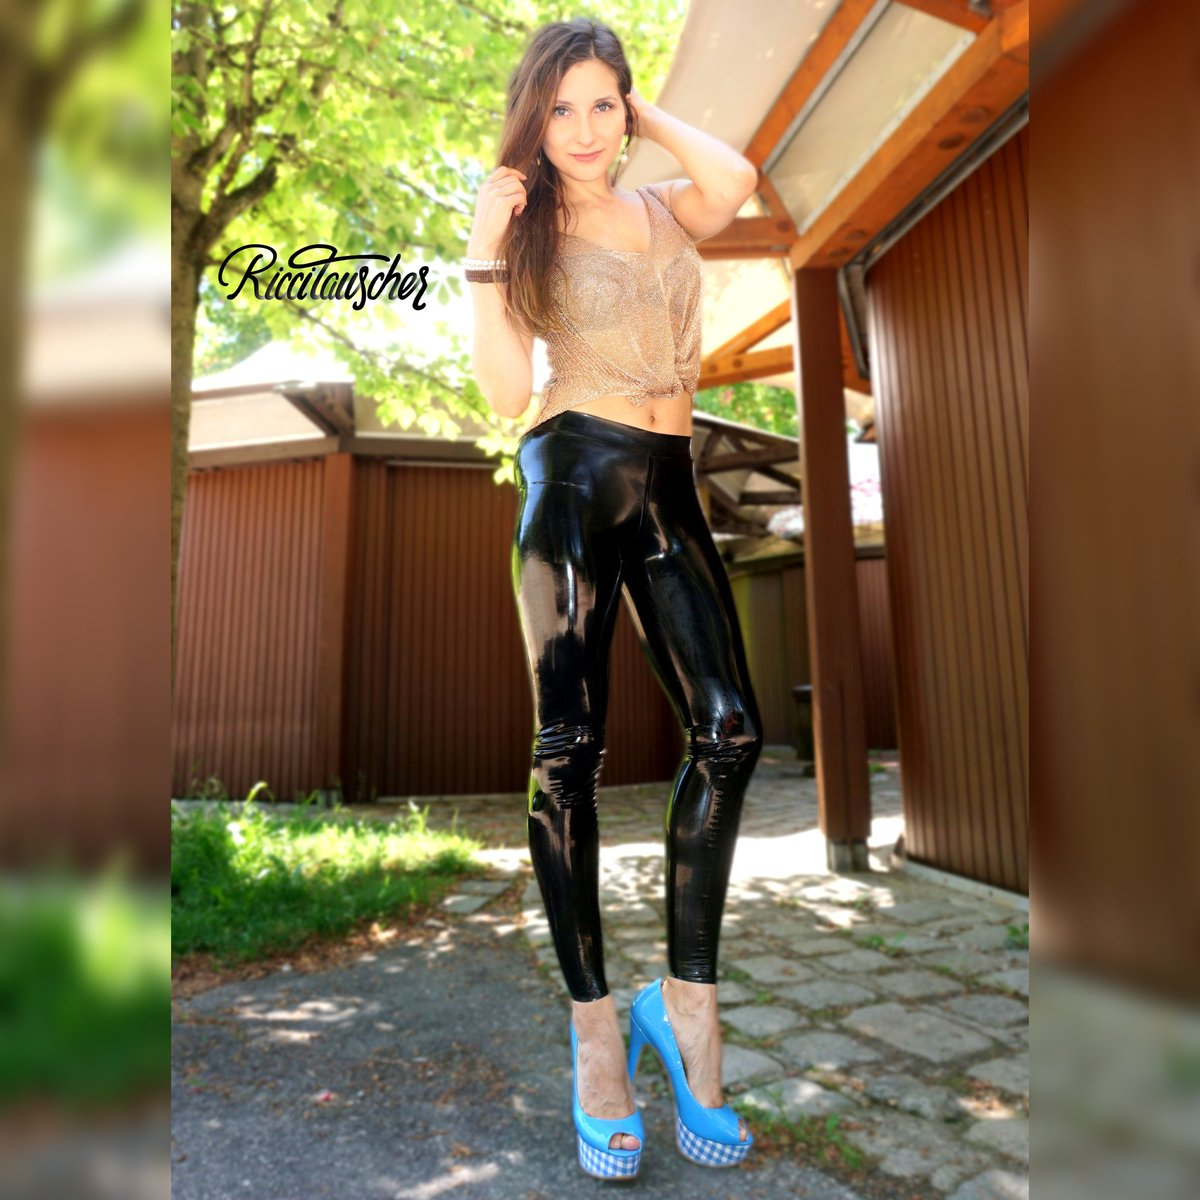 #chilling at the #Westpark   Eure Ricci Mit @simonolatex And shiny with #@begloss  #relaxing #munich #münchen #travellover #travelblogger #simono #riccitauscher #riccit #ricci #followme #likeagirl #follower #shiny #latexmode #latexinpublic #latexfashion #highheelsloverpic.twitter.com/YOJM4Ux96T